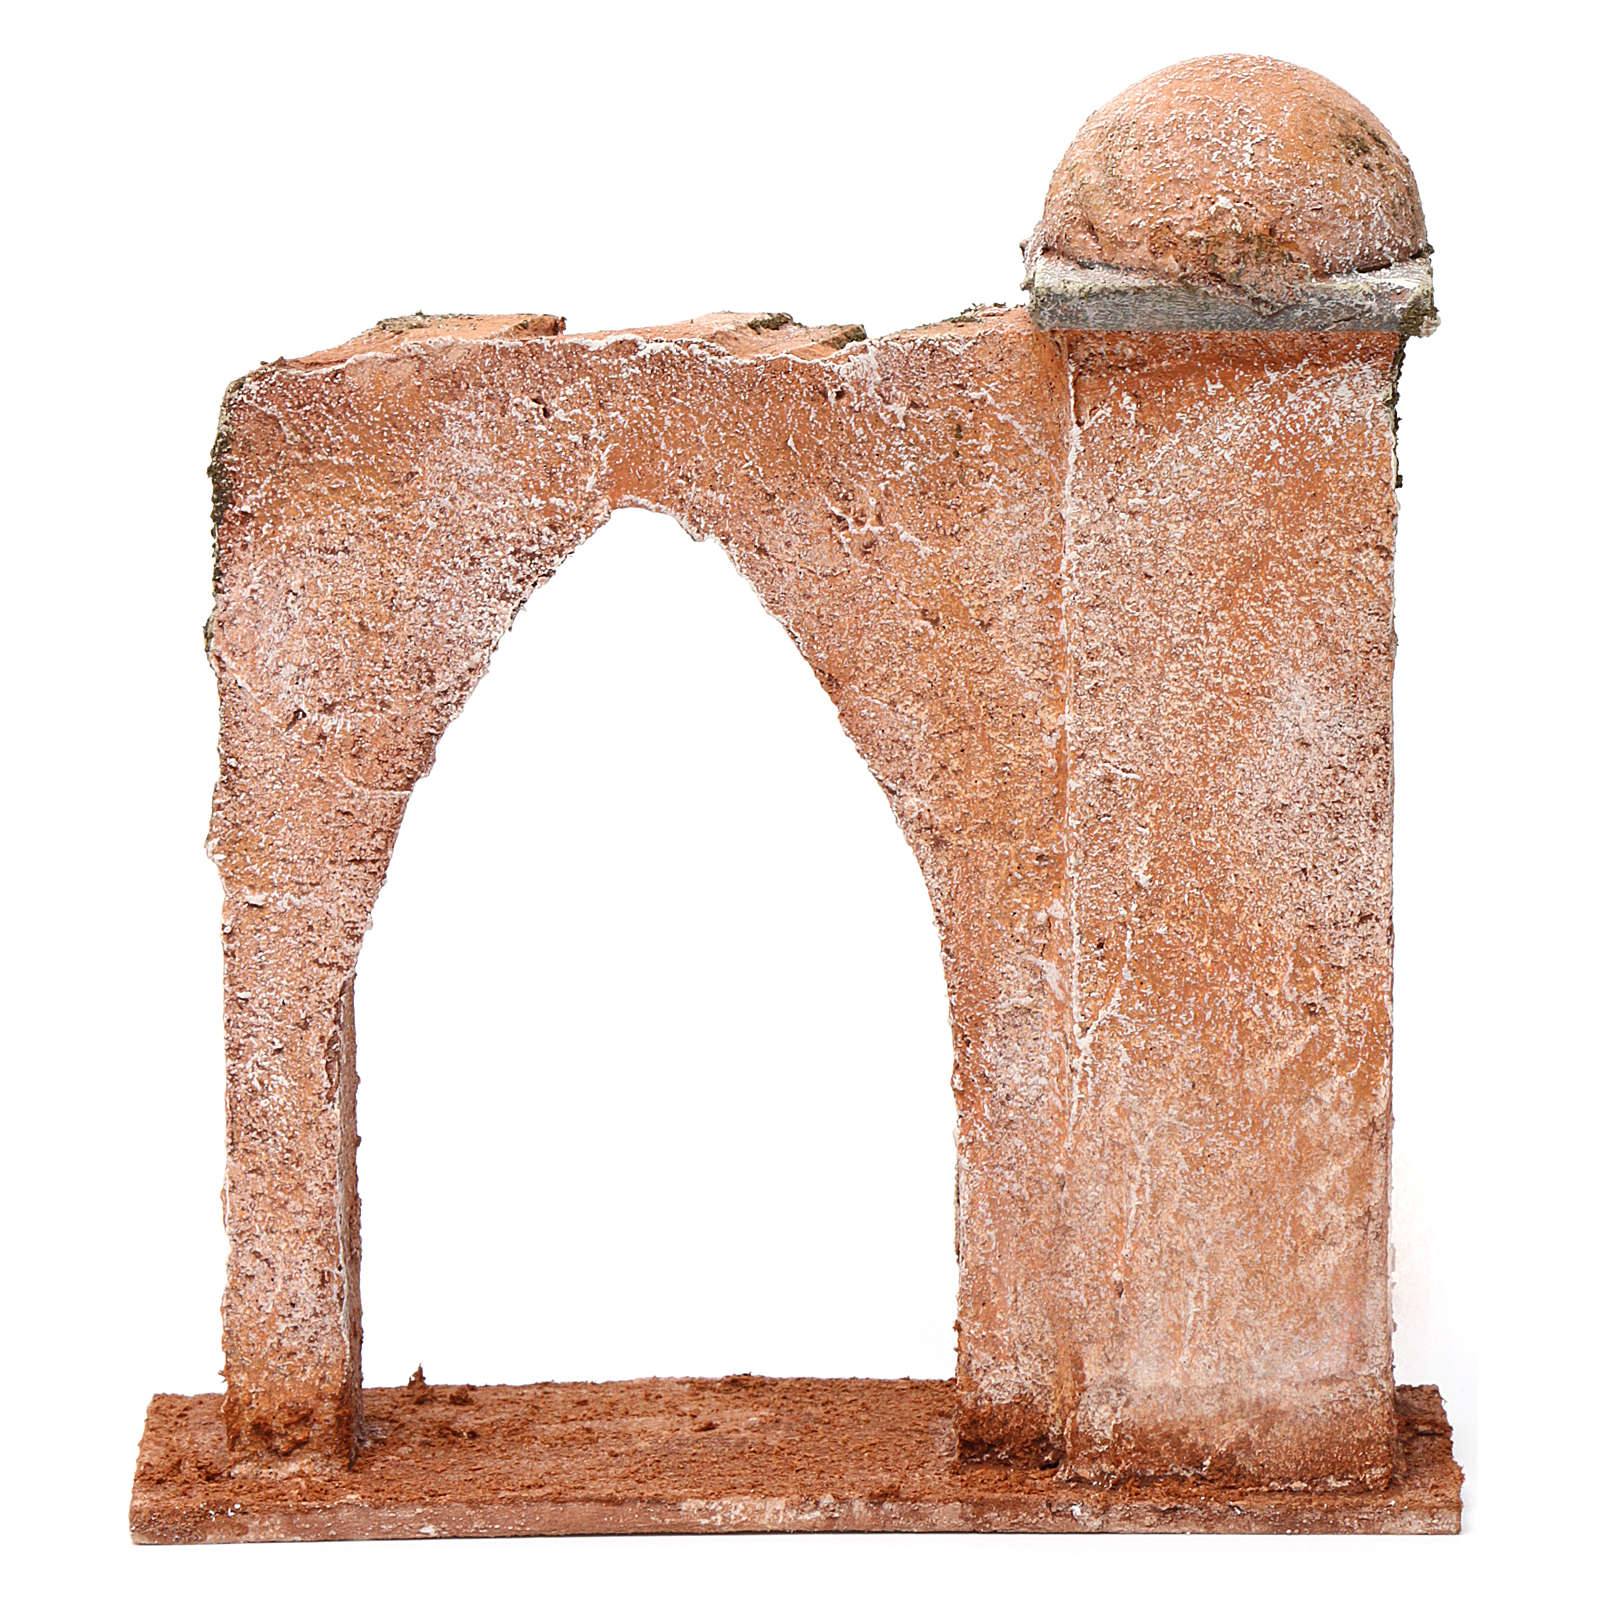 Ogival arch wall and column for 10 cm Nativity 20X15X5 cm Palestinian style 4